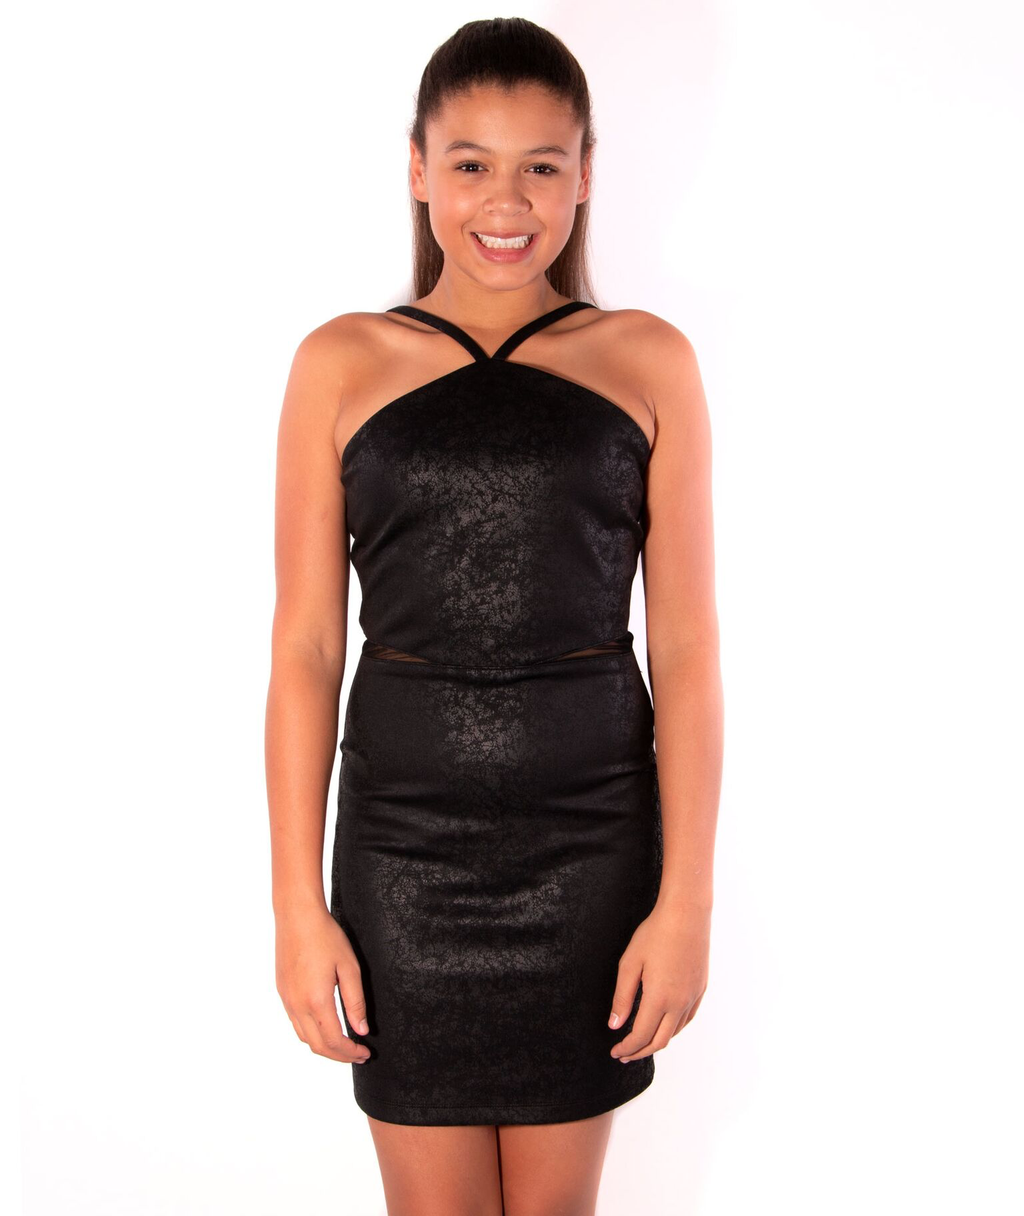 By Debra Girls Black Mesh Body Con Dress